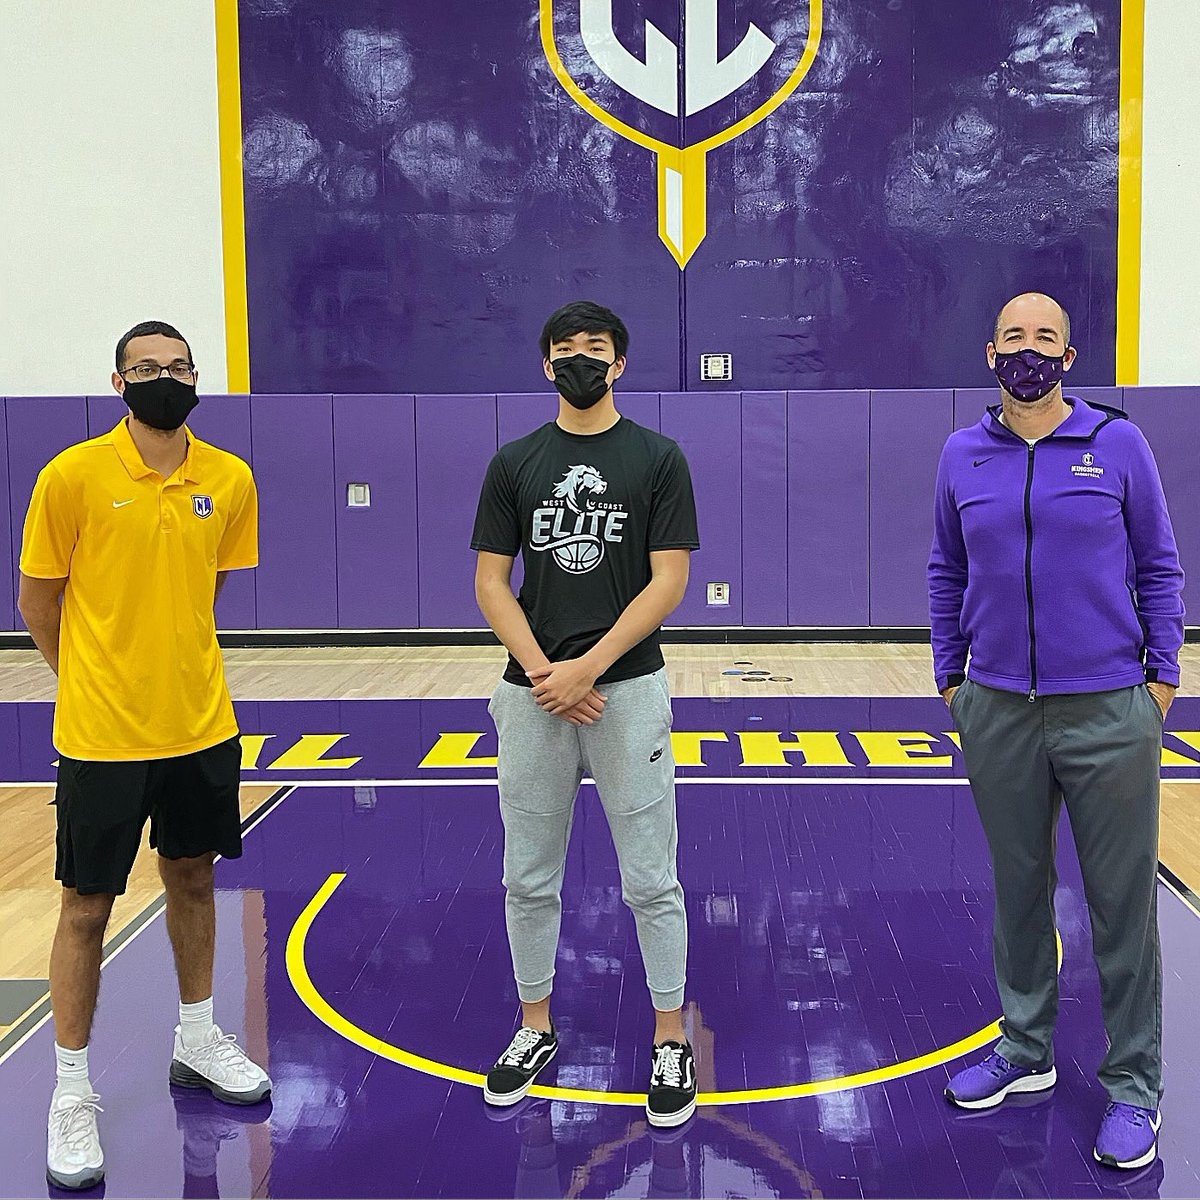 """6'6"""" G Adam Damian of Monte Vista (2021) on a visit at Cal Lutheran. Pictured with head coach Russell White and assistant coach Kris Saulny 🏀🔥 #ALLIN"""